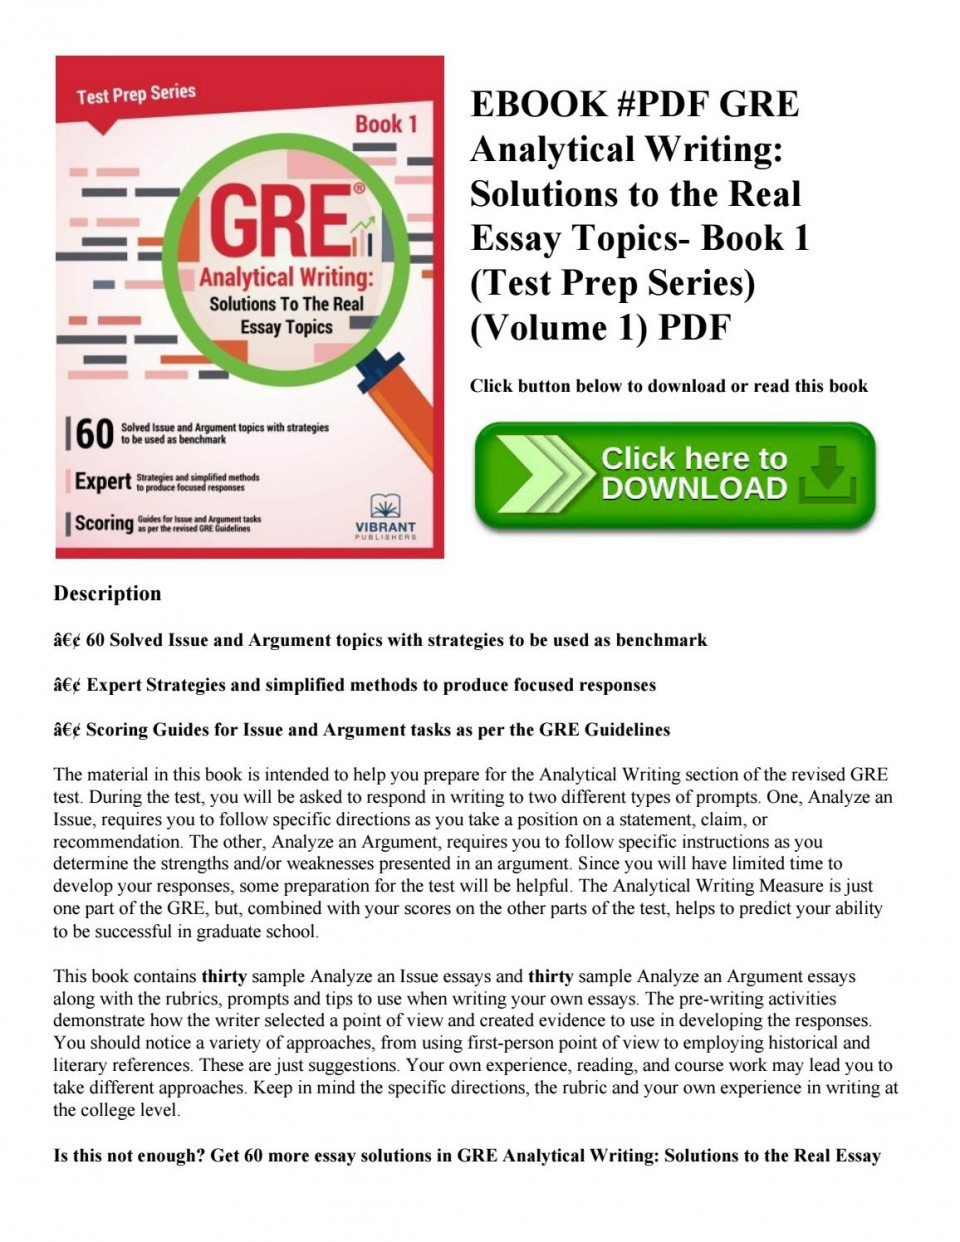 005 Essay Example Gre Book Pdf Page 1 Incredible Analytical Writing 960